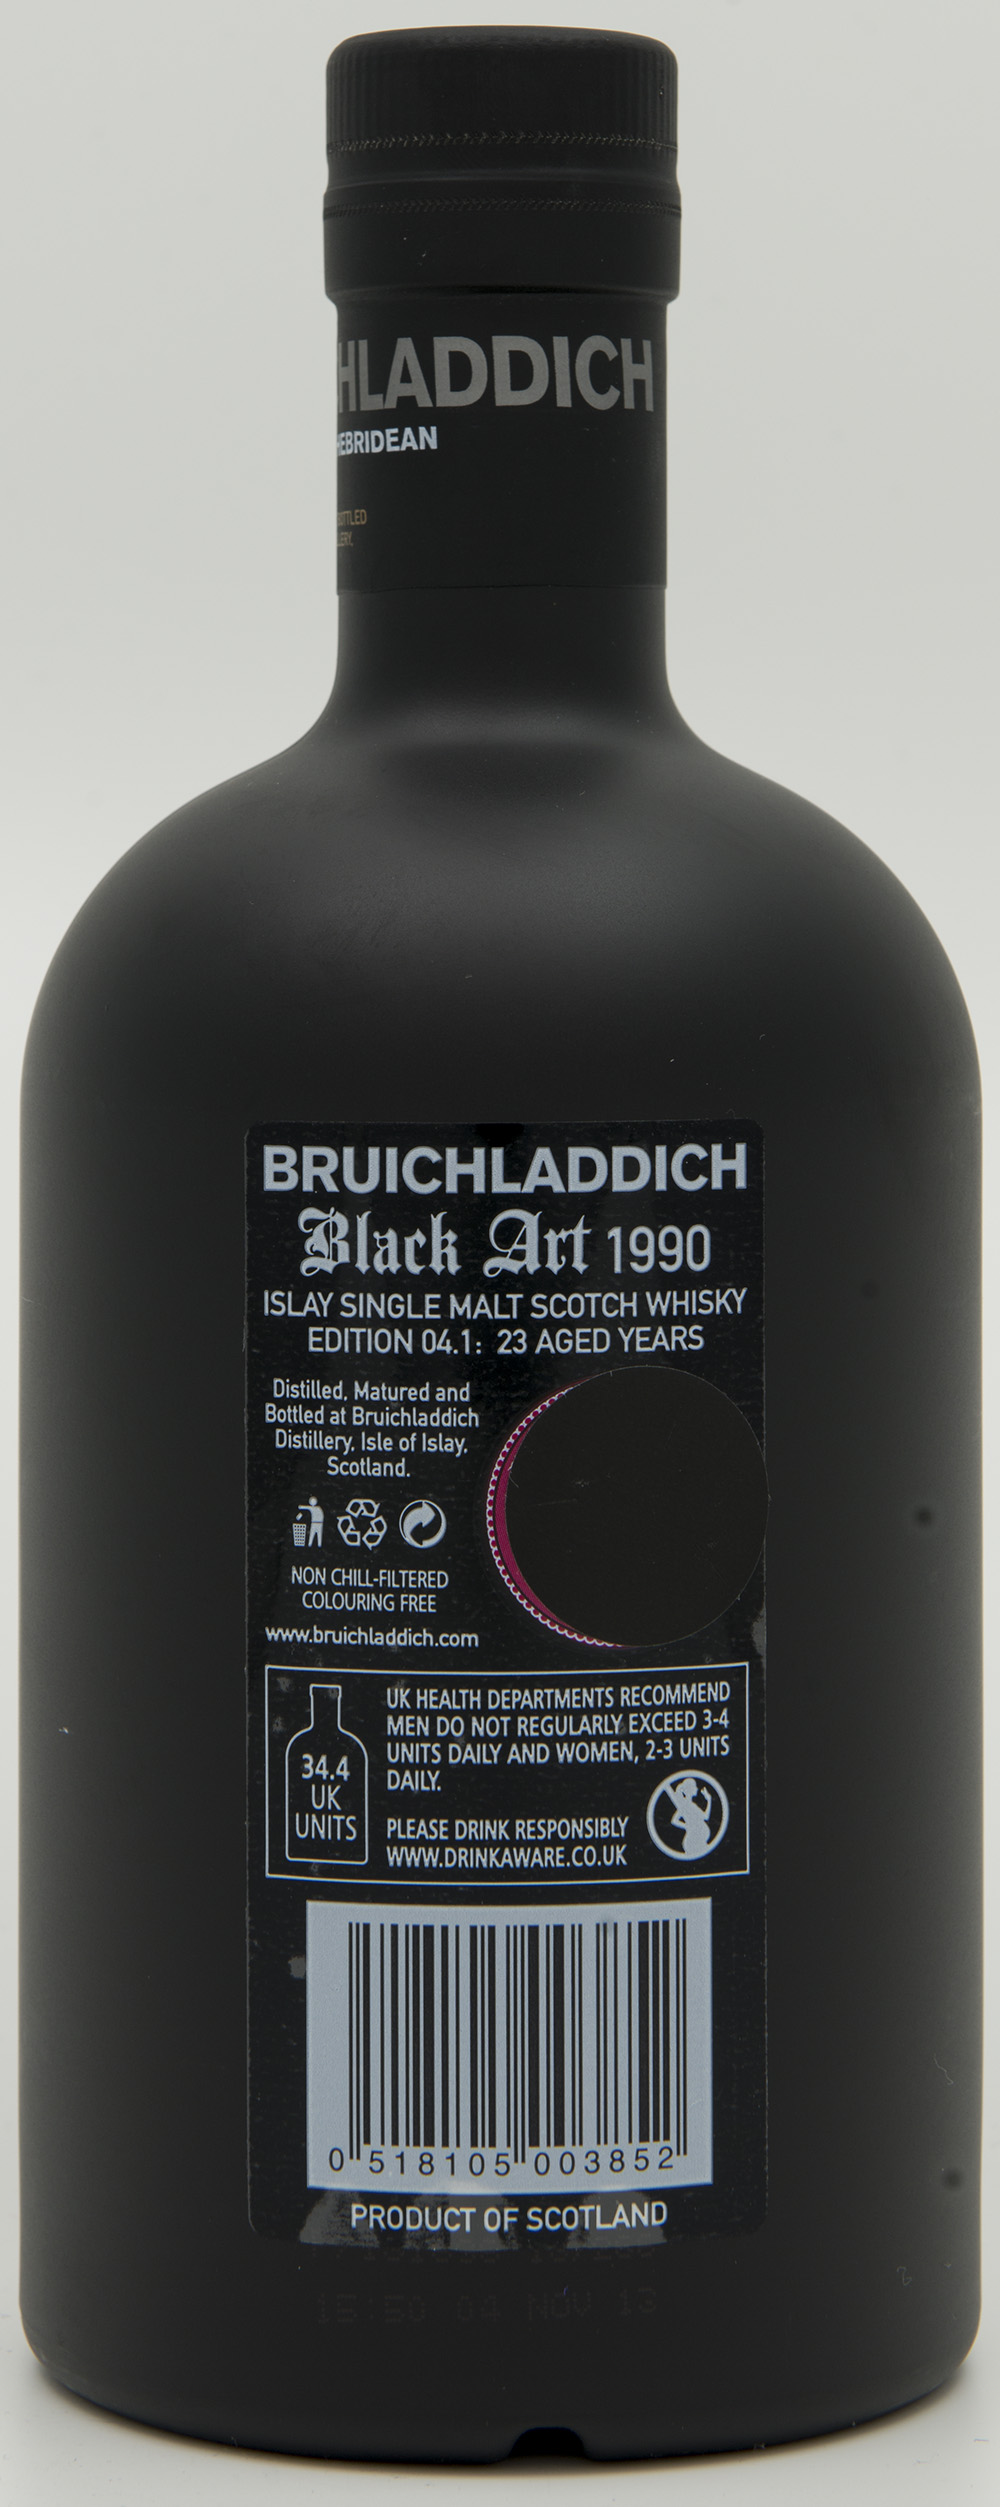 Billede: DSC_6184 - Bruichladdich Black Art 1990 - Edition 04.1 - 23 years - bottle back.jpg